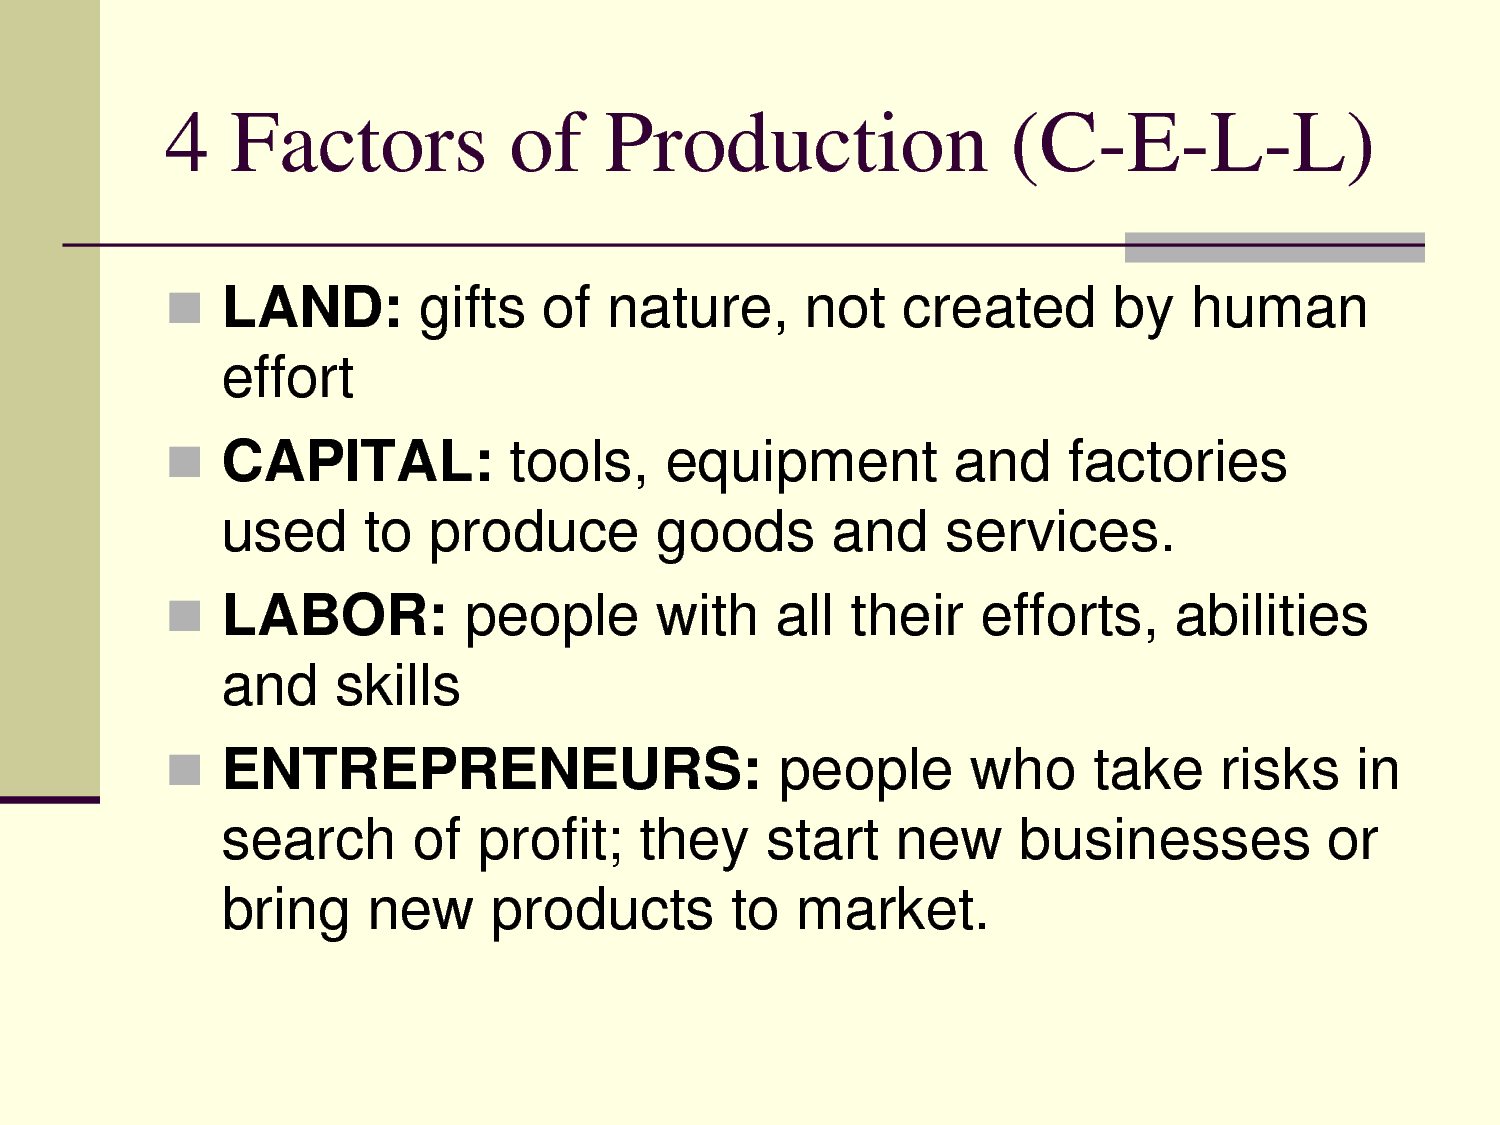 Labor as a factor of production